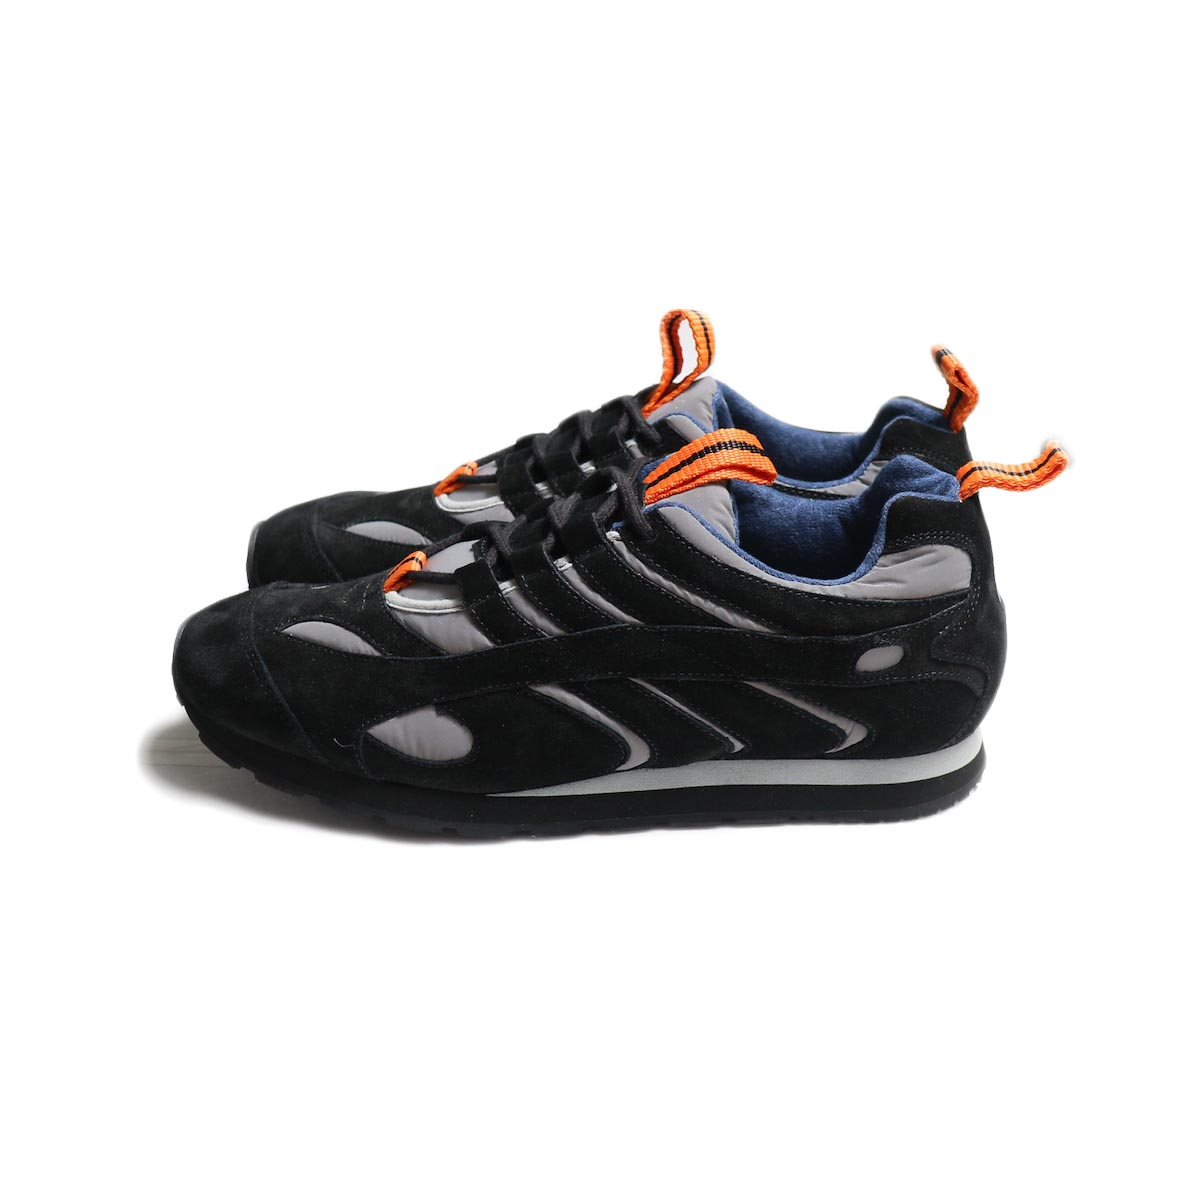 REPRODUCTION OF FOUND / FRENCH MILITARY TRAINER -Reflection/Black